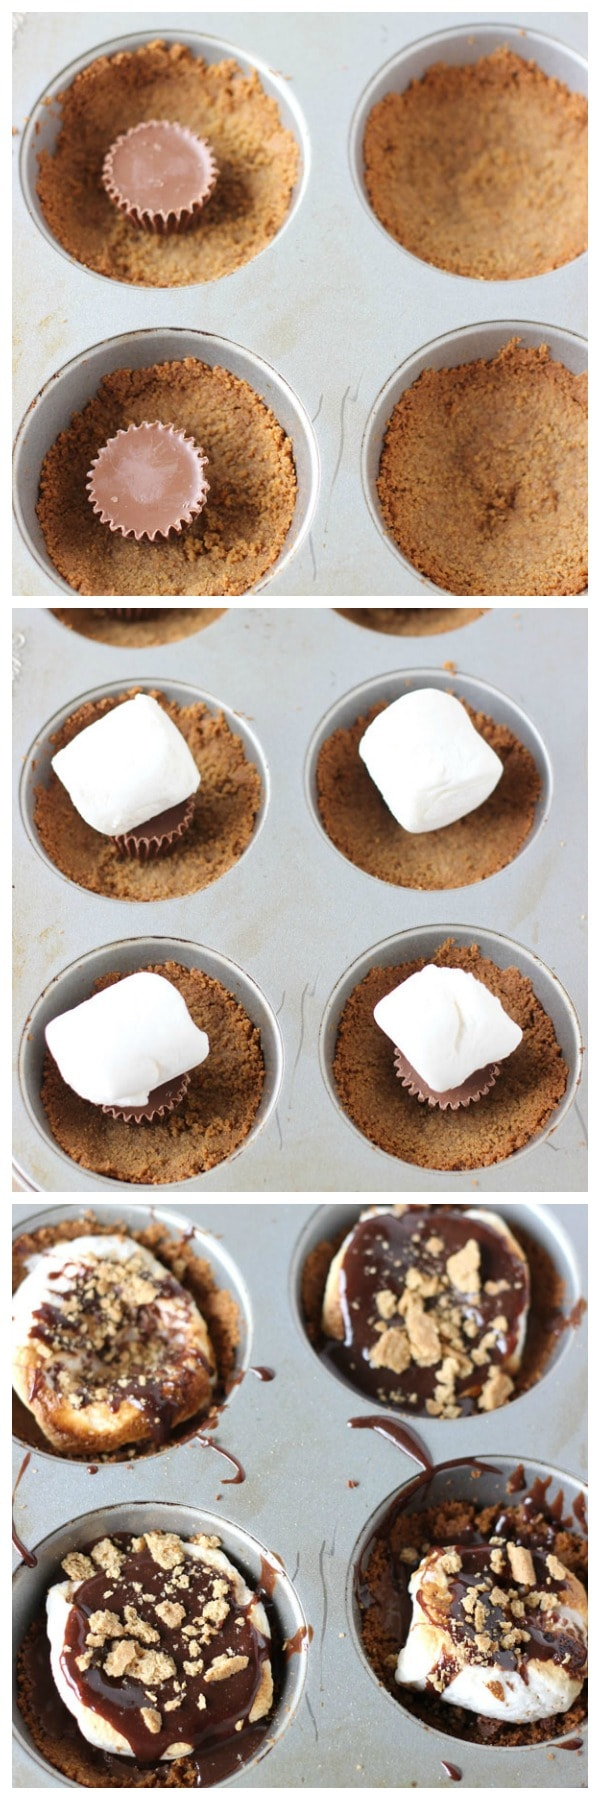 Peanut Butter Smores Cups